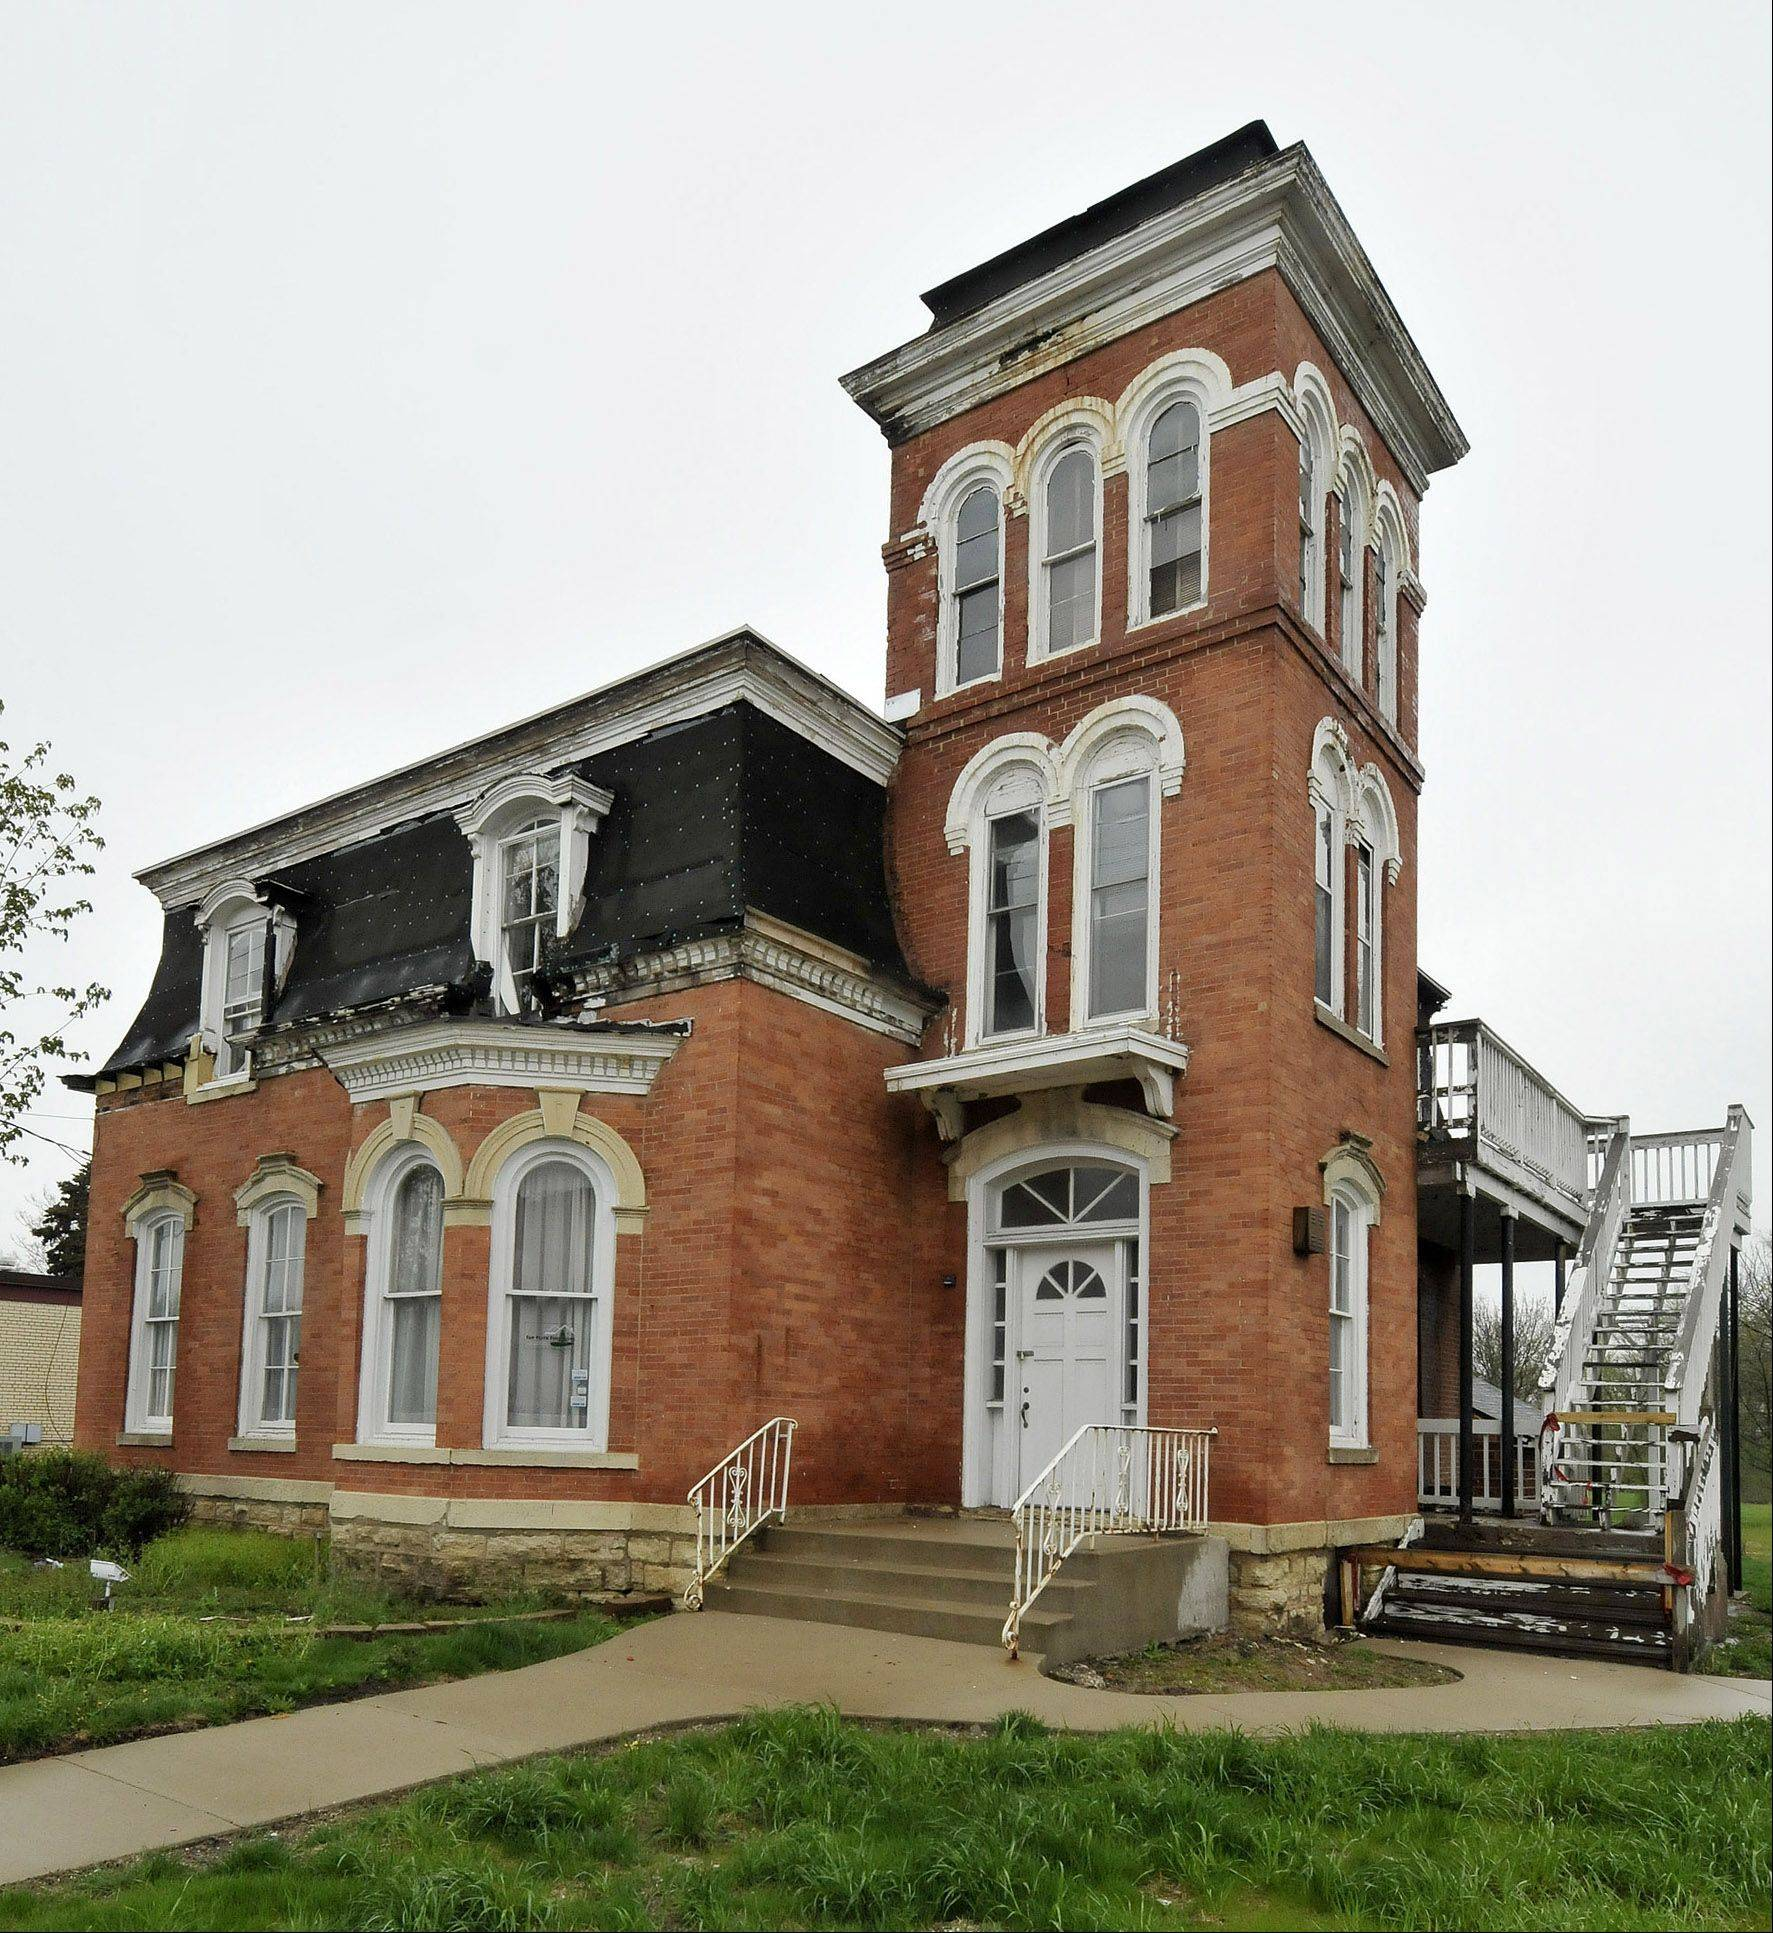 West Chicago is seeking permission from the city's historical preservation commission to demolish the Joel Wiant House, which is located at 151 W. Washington St.